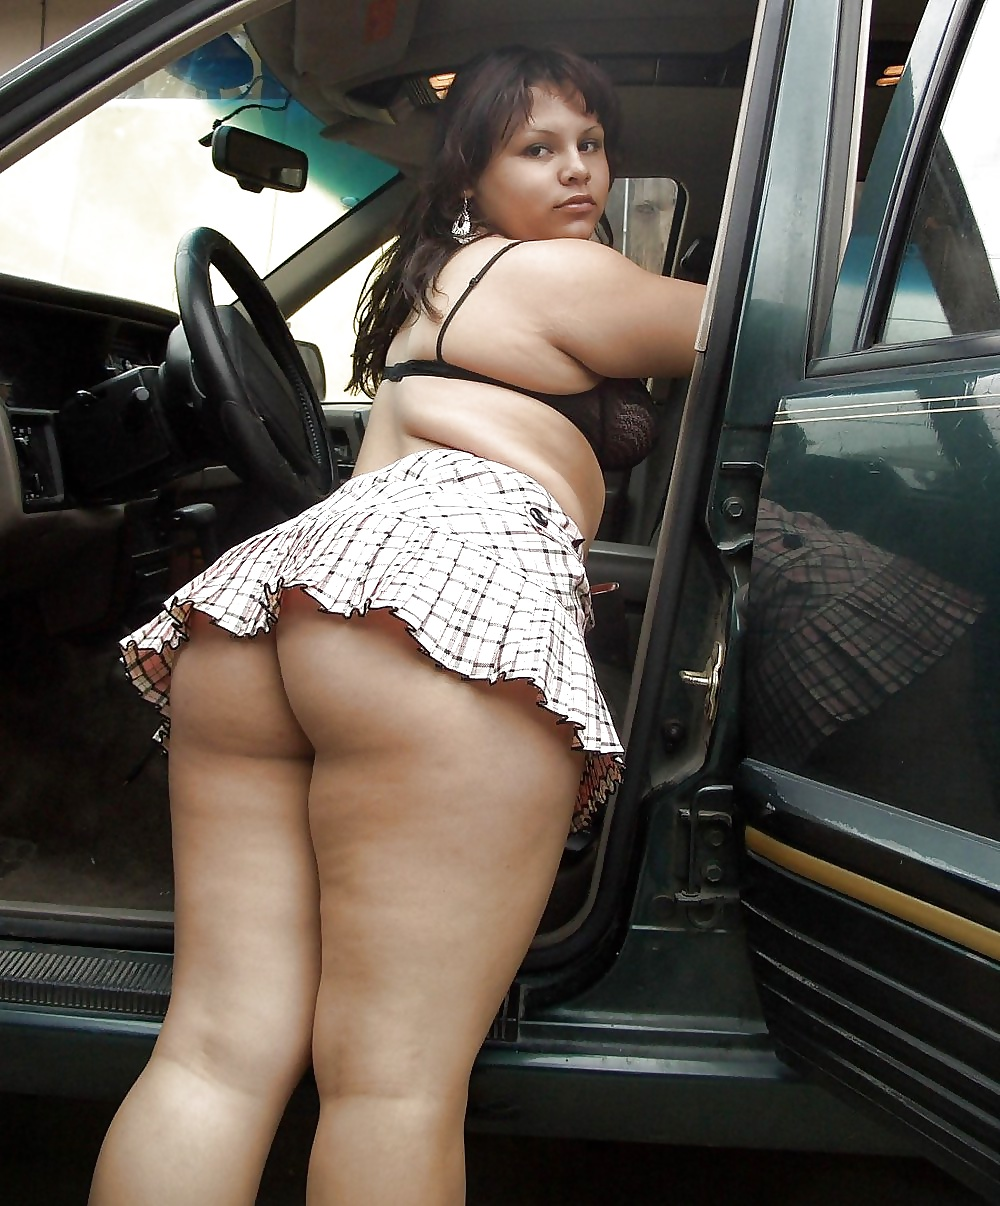 sexy-big-women-upskirt-brickhousbetty-videos-lesbian